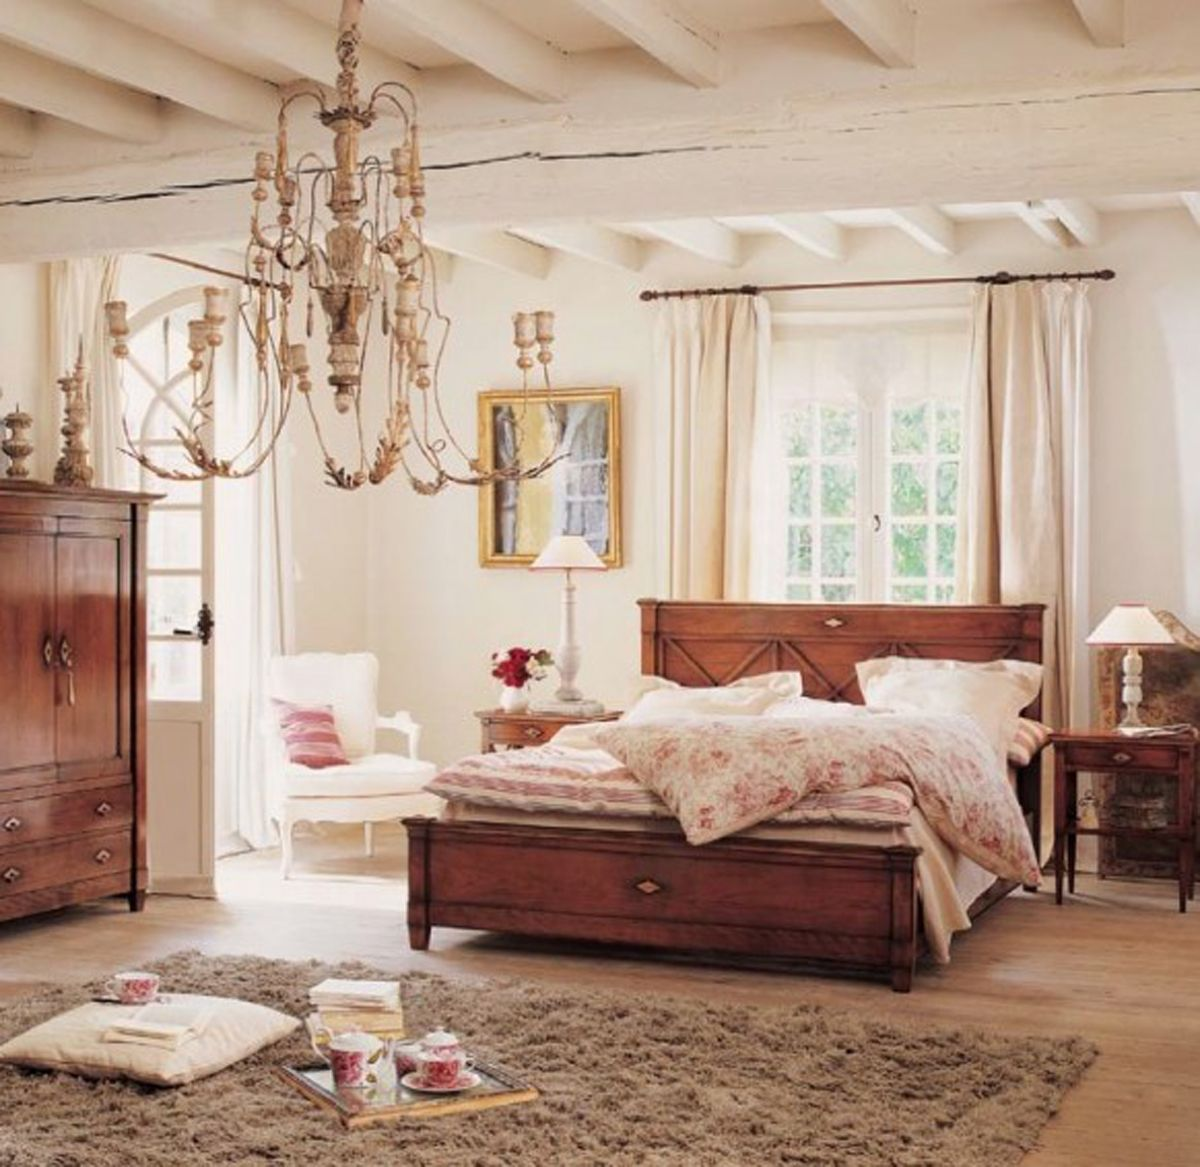 Rustic Bedroom Decorating Idea In Neutral Color With White Wall